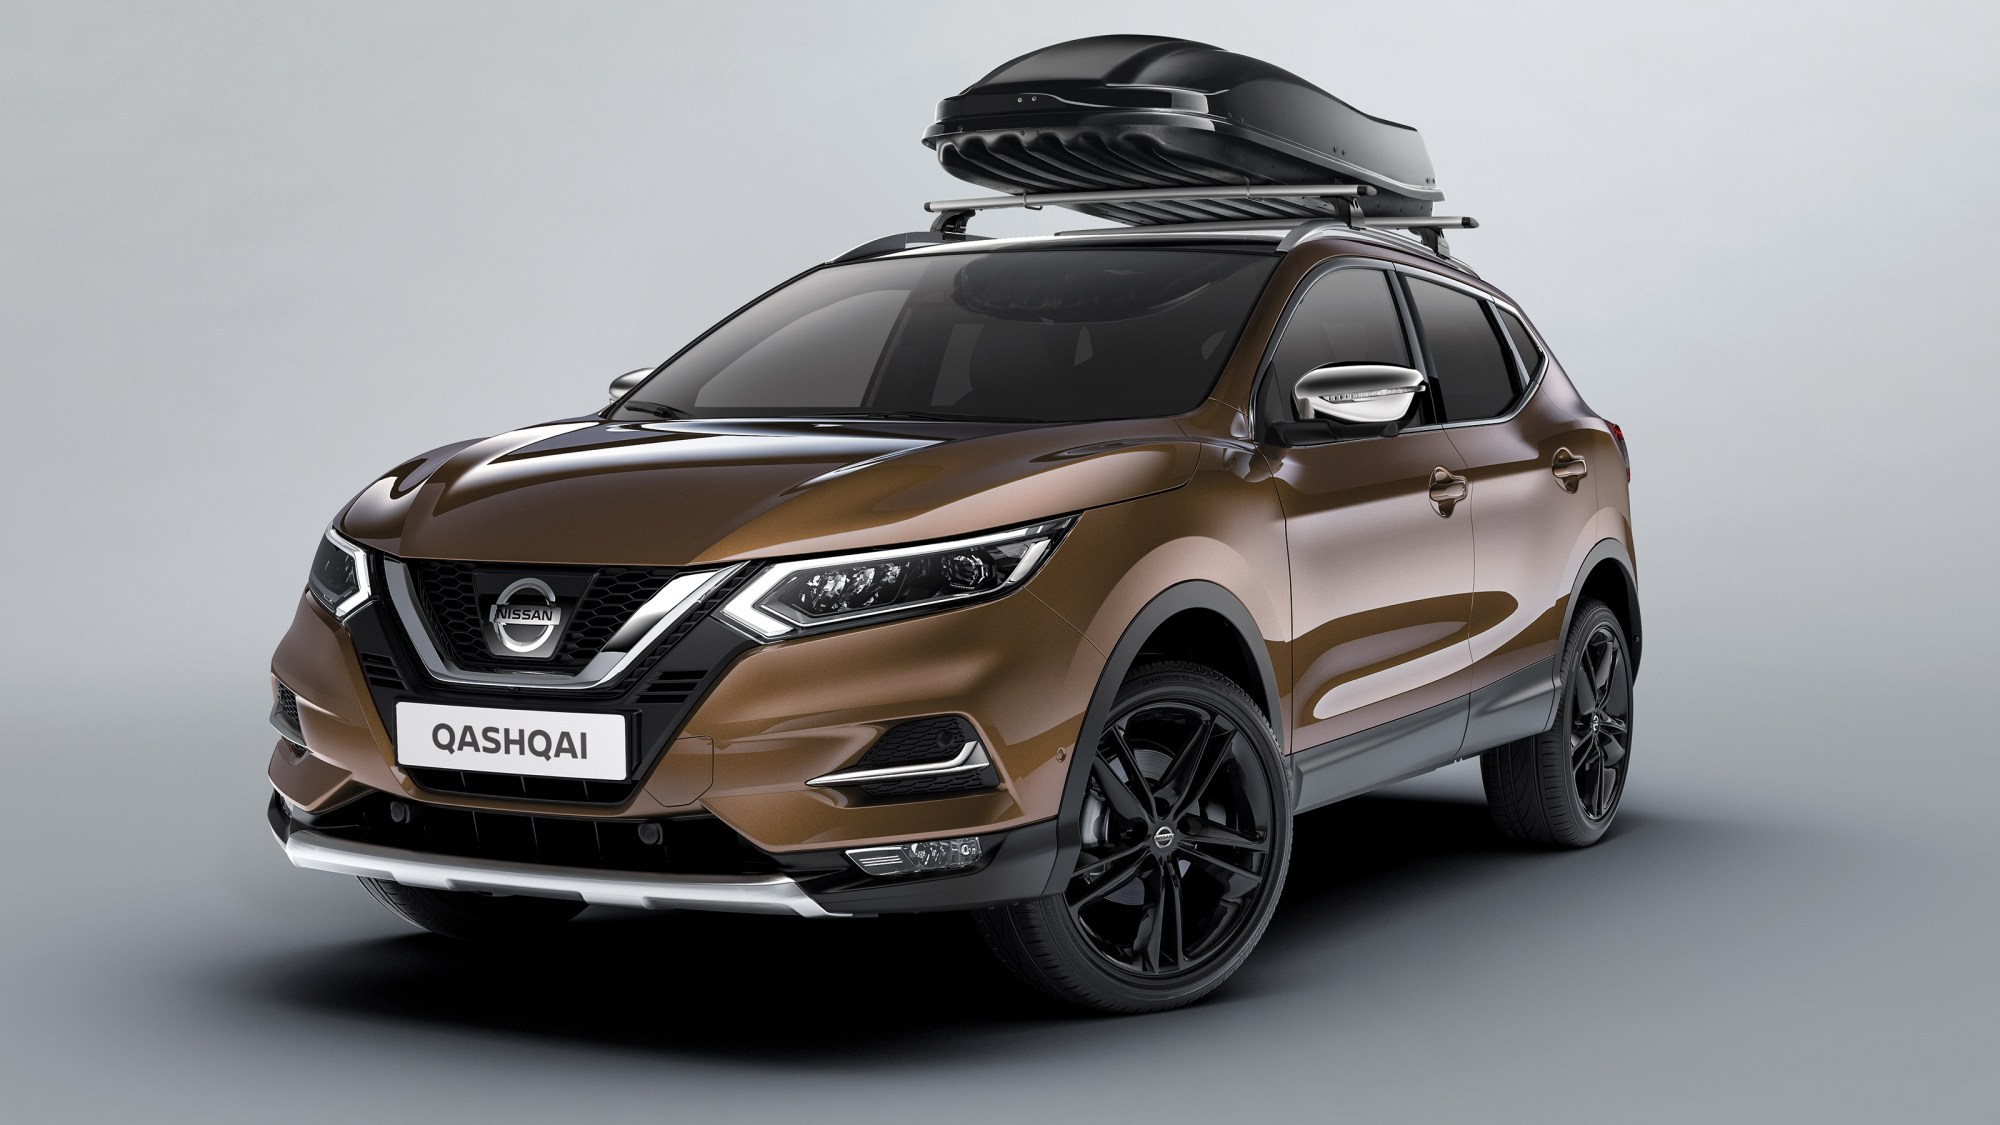 hight resolution of nissan qashqai avec coffre de toit